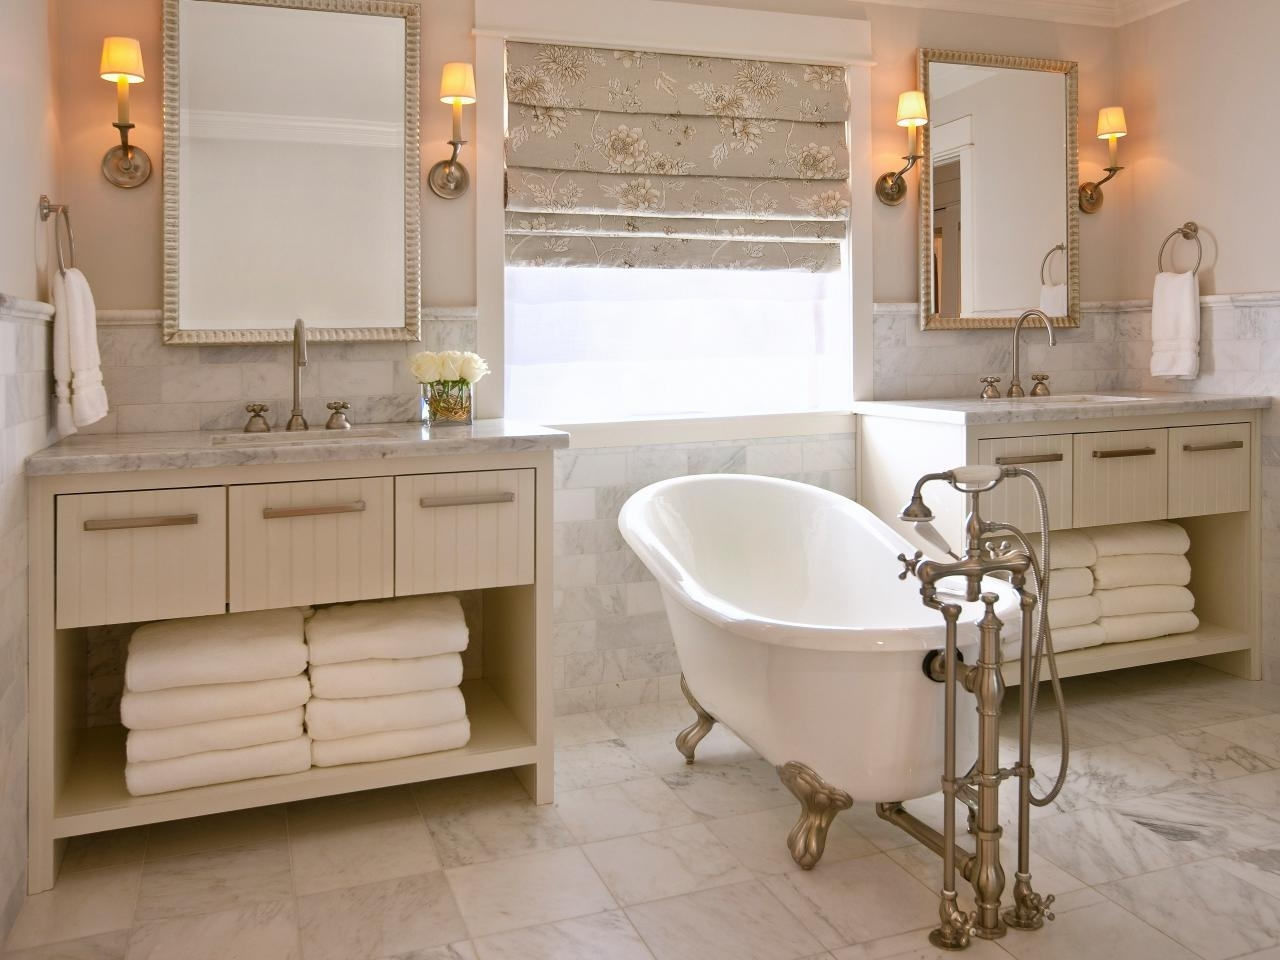 Clawfoot Tub Designs: Pictures, Ideas & Tips From Hgtv | Hgtv 40+ Cast Iron Tub Bathroom Design Inspirations